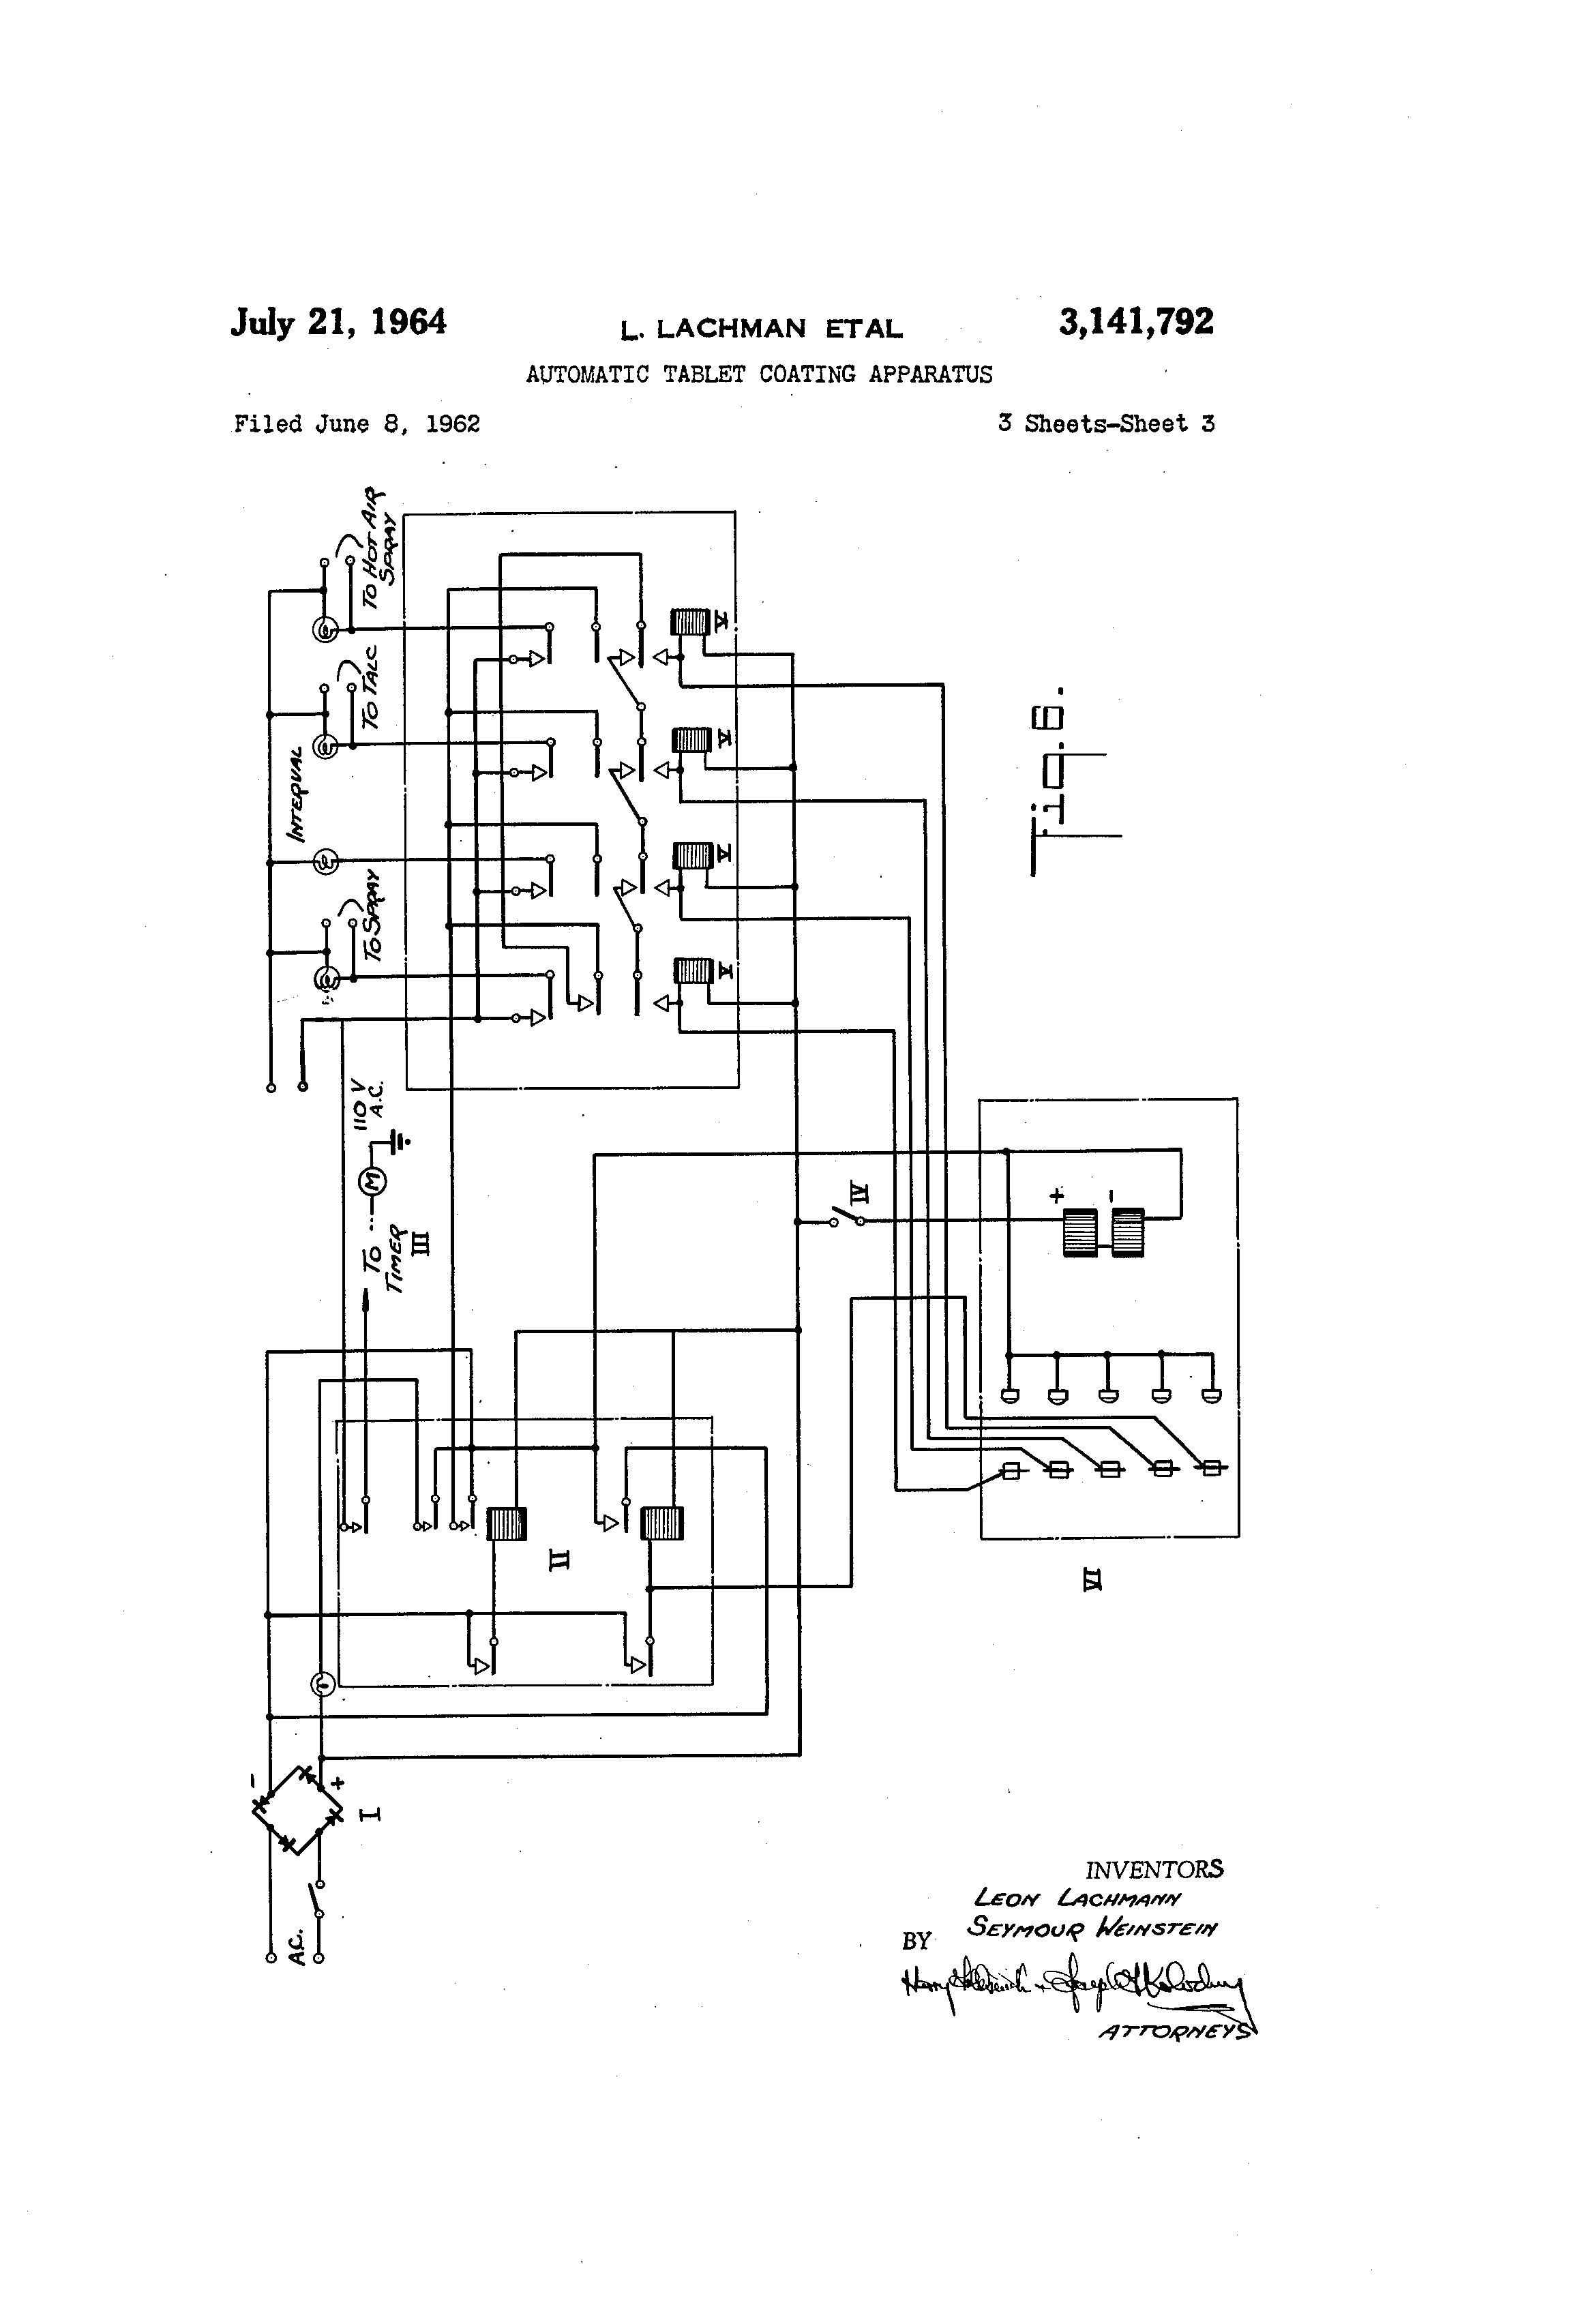 A New Circuit Breaker Wiring Diagram | Wiring Diagram Database